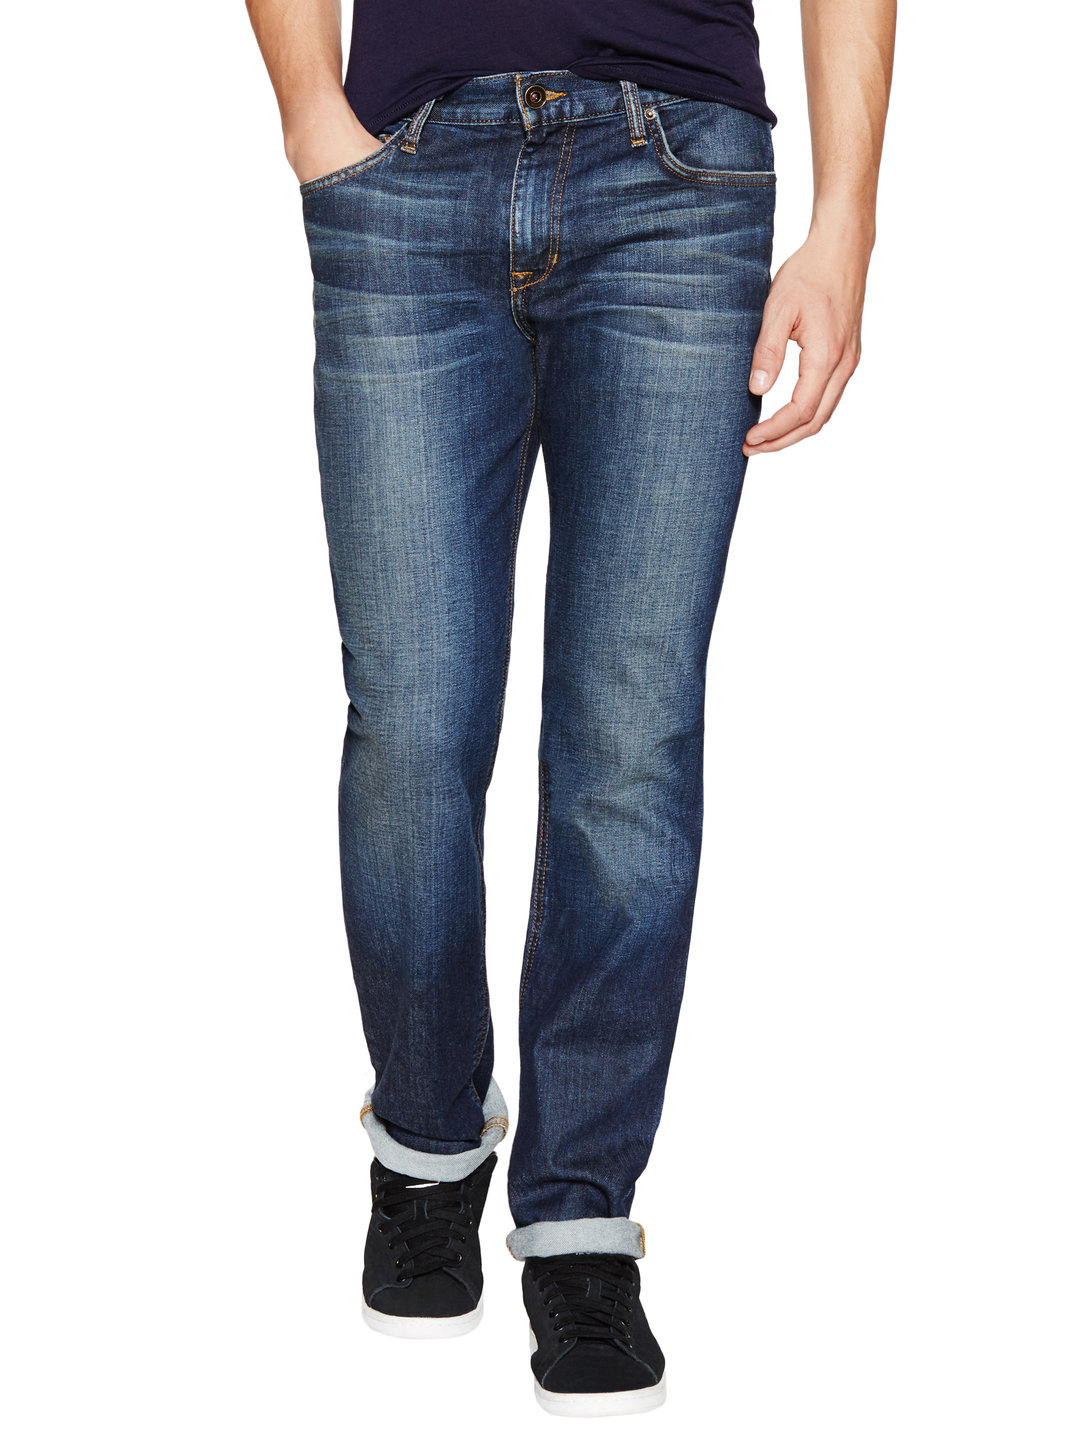 Shop Ann Taylor's jeans and denim in all your favorite styles like bootcut jeans, skinny jeans, and more. EXTRA 40% OFF** ALL SALE STYLES DETAILS. Giving Back Is Beautiful. Learn More About The Ann Cares Card. Free Shipping on $ or more & $ Flat-Rate Shipping & Handling. Jeans on Sale.